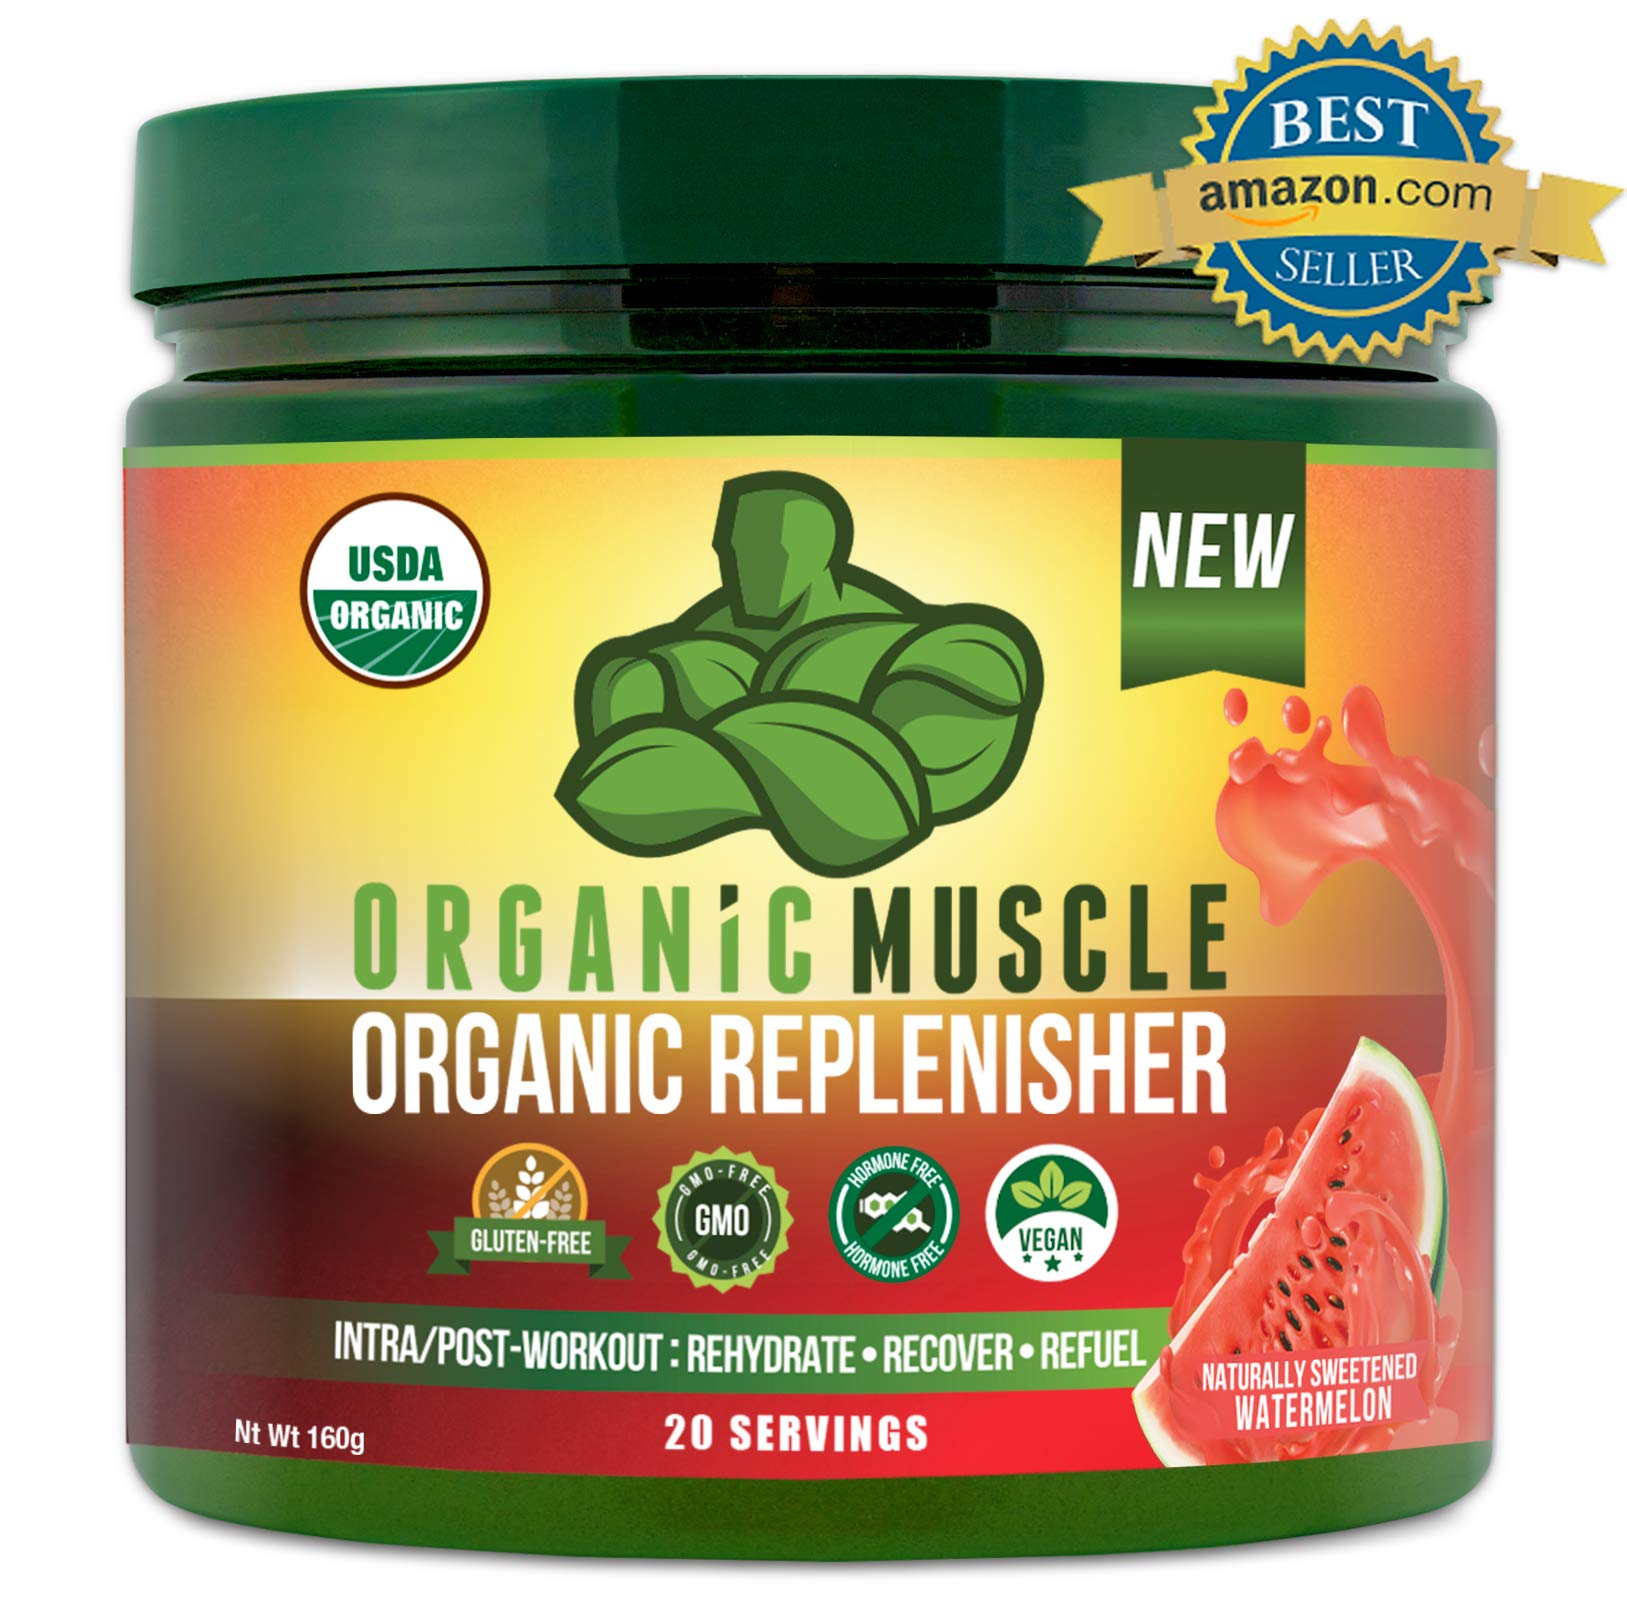 Organic Replenisher Electrolyte Powder- Organic Post Workout & Intra-Workout Vegan Recovery Drink. Max Hydration w/Coconut Water, Mineral Salts, More. Non-GMO - Watermelon Flavor - ORGANIC MUSCLE by Organic Muscle